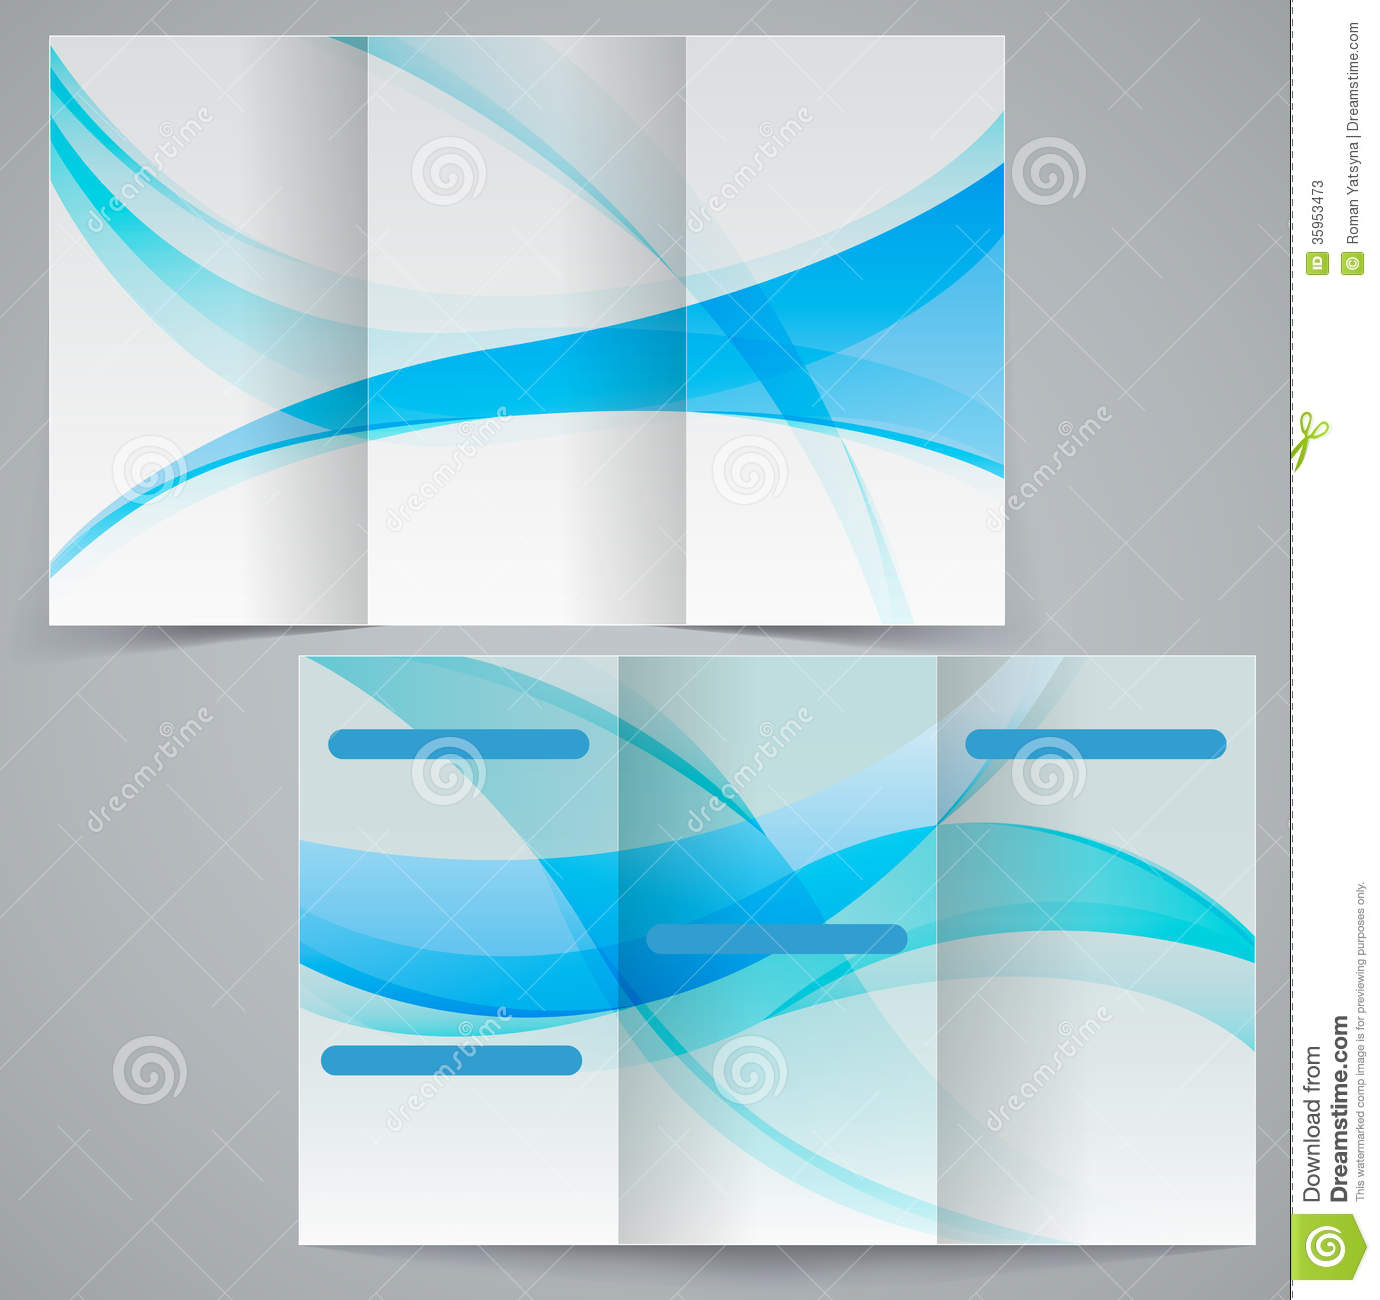 Tri fold business brochure template vector blue d stock for Brochure samples templates